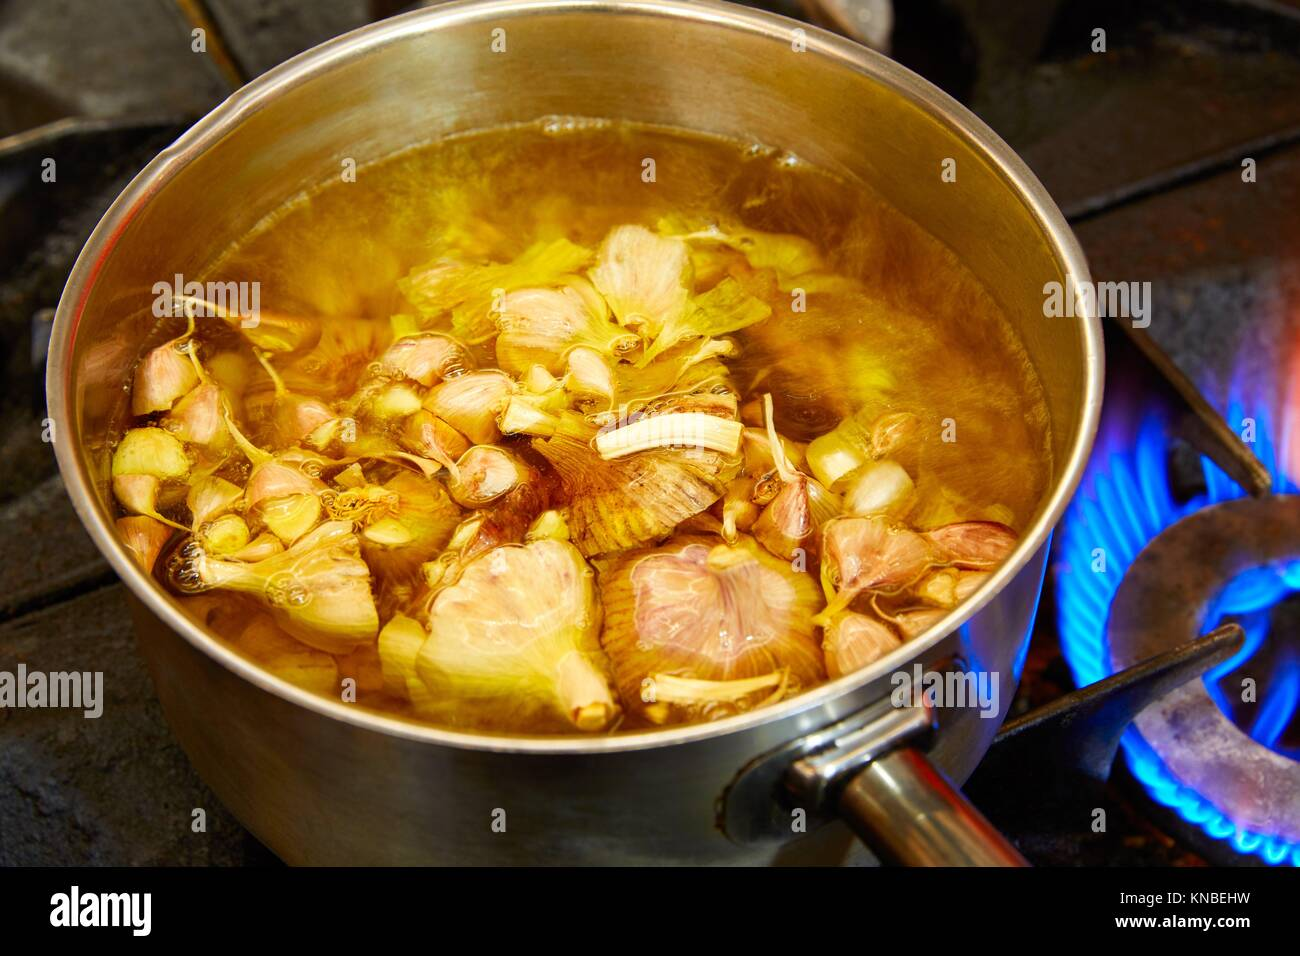 Cooking food fire place stock photos cooking food fire place stock garlic boiling soup in a pan at kitchen fire stock image forumfinder Choice Image